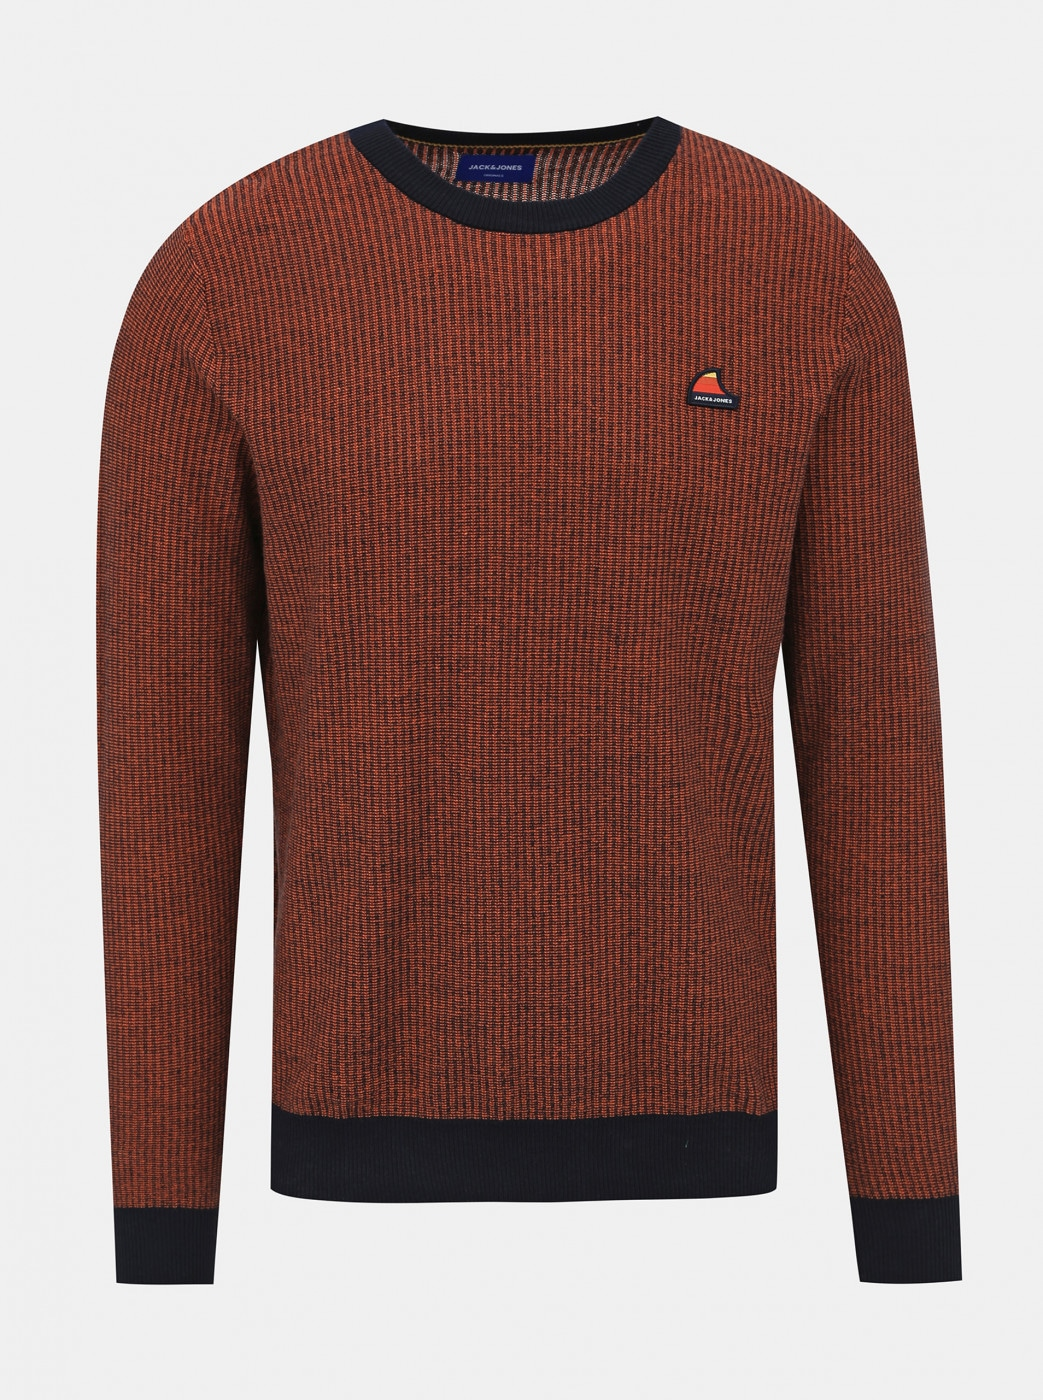 Jack & Jones Neil Brown Patterned Sweater